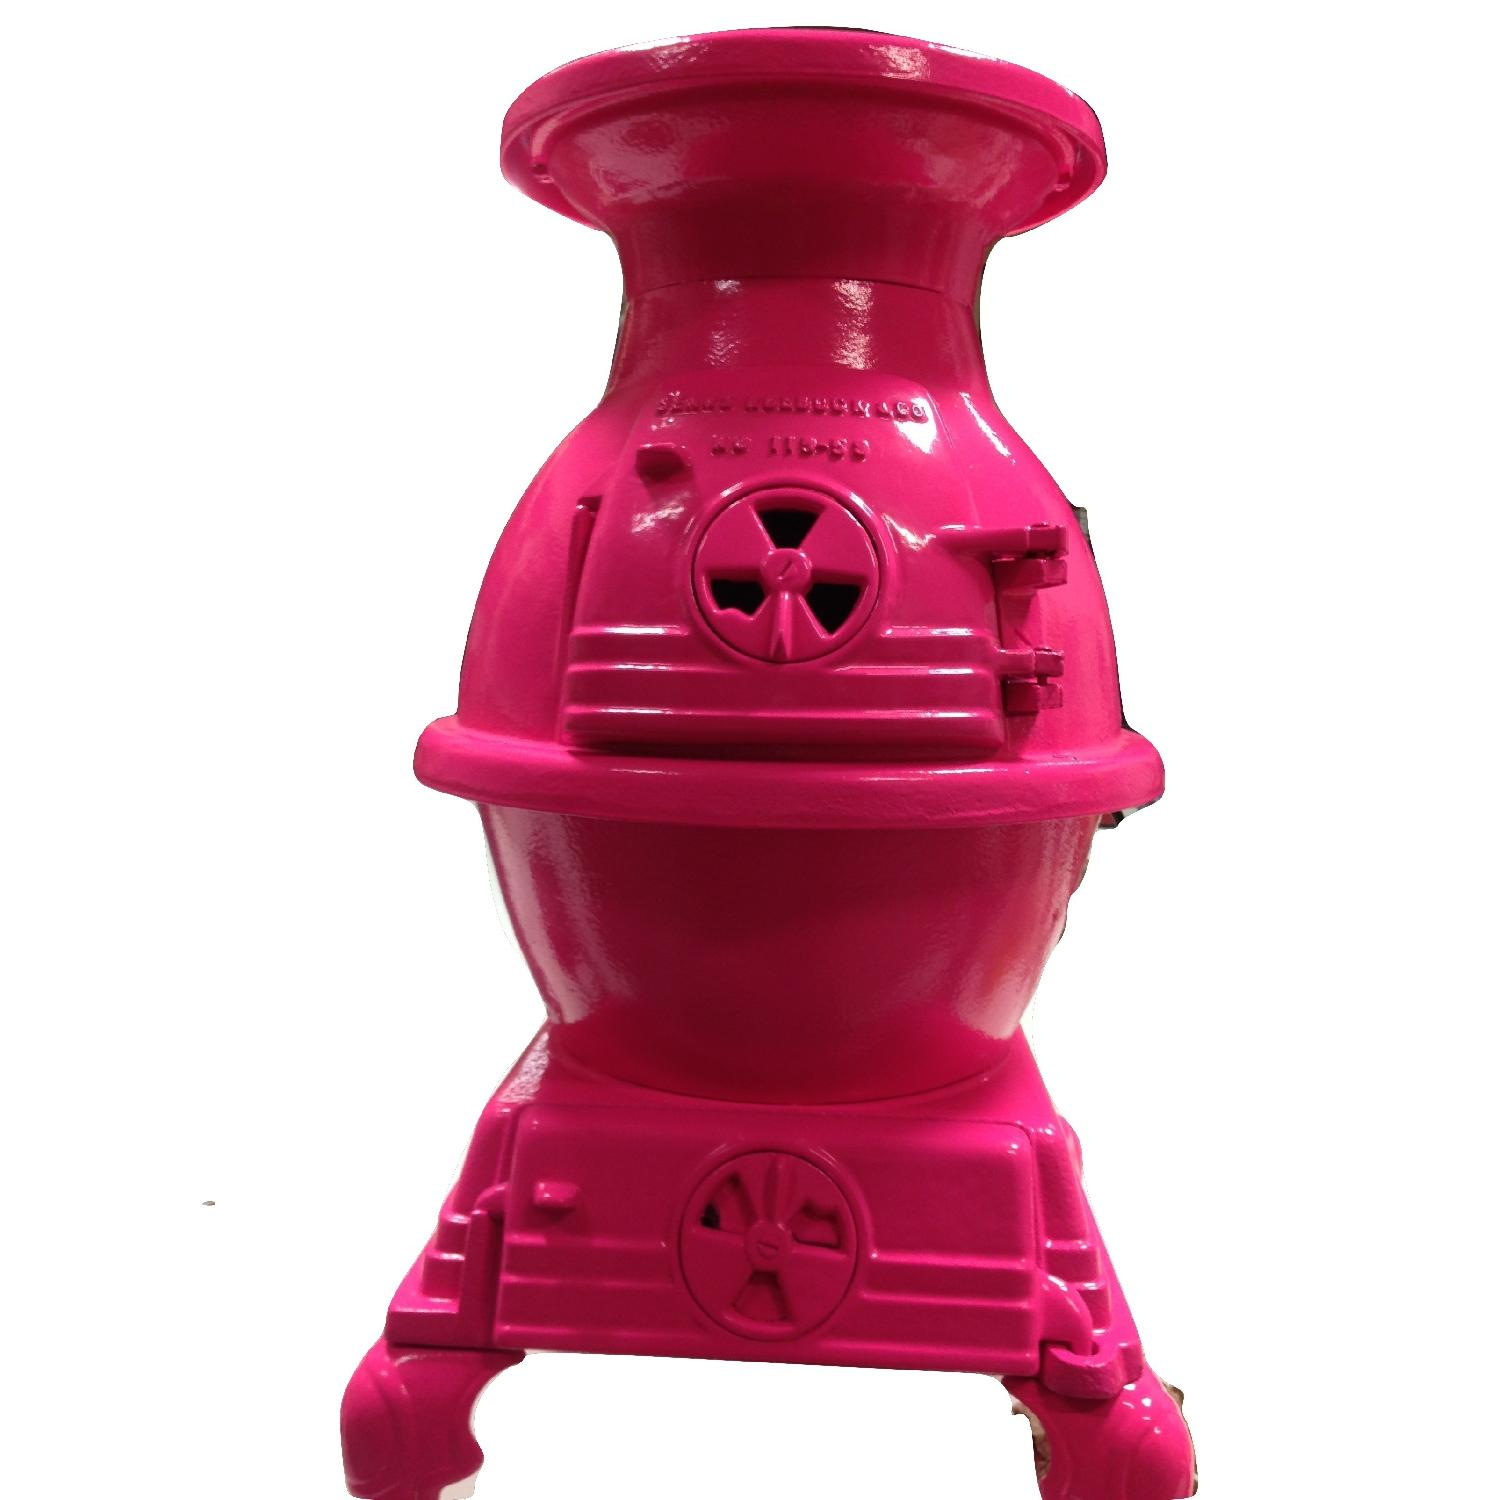 Hot Pink Pot Belly Stove-1